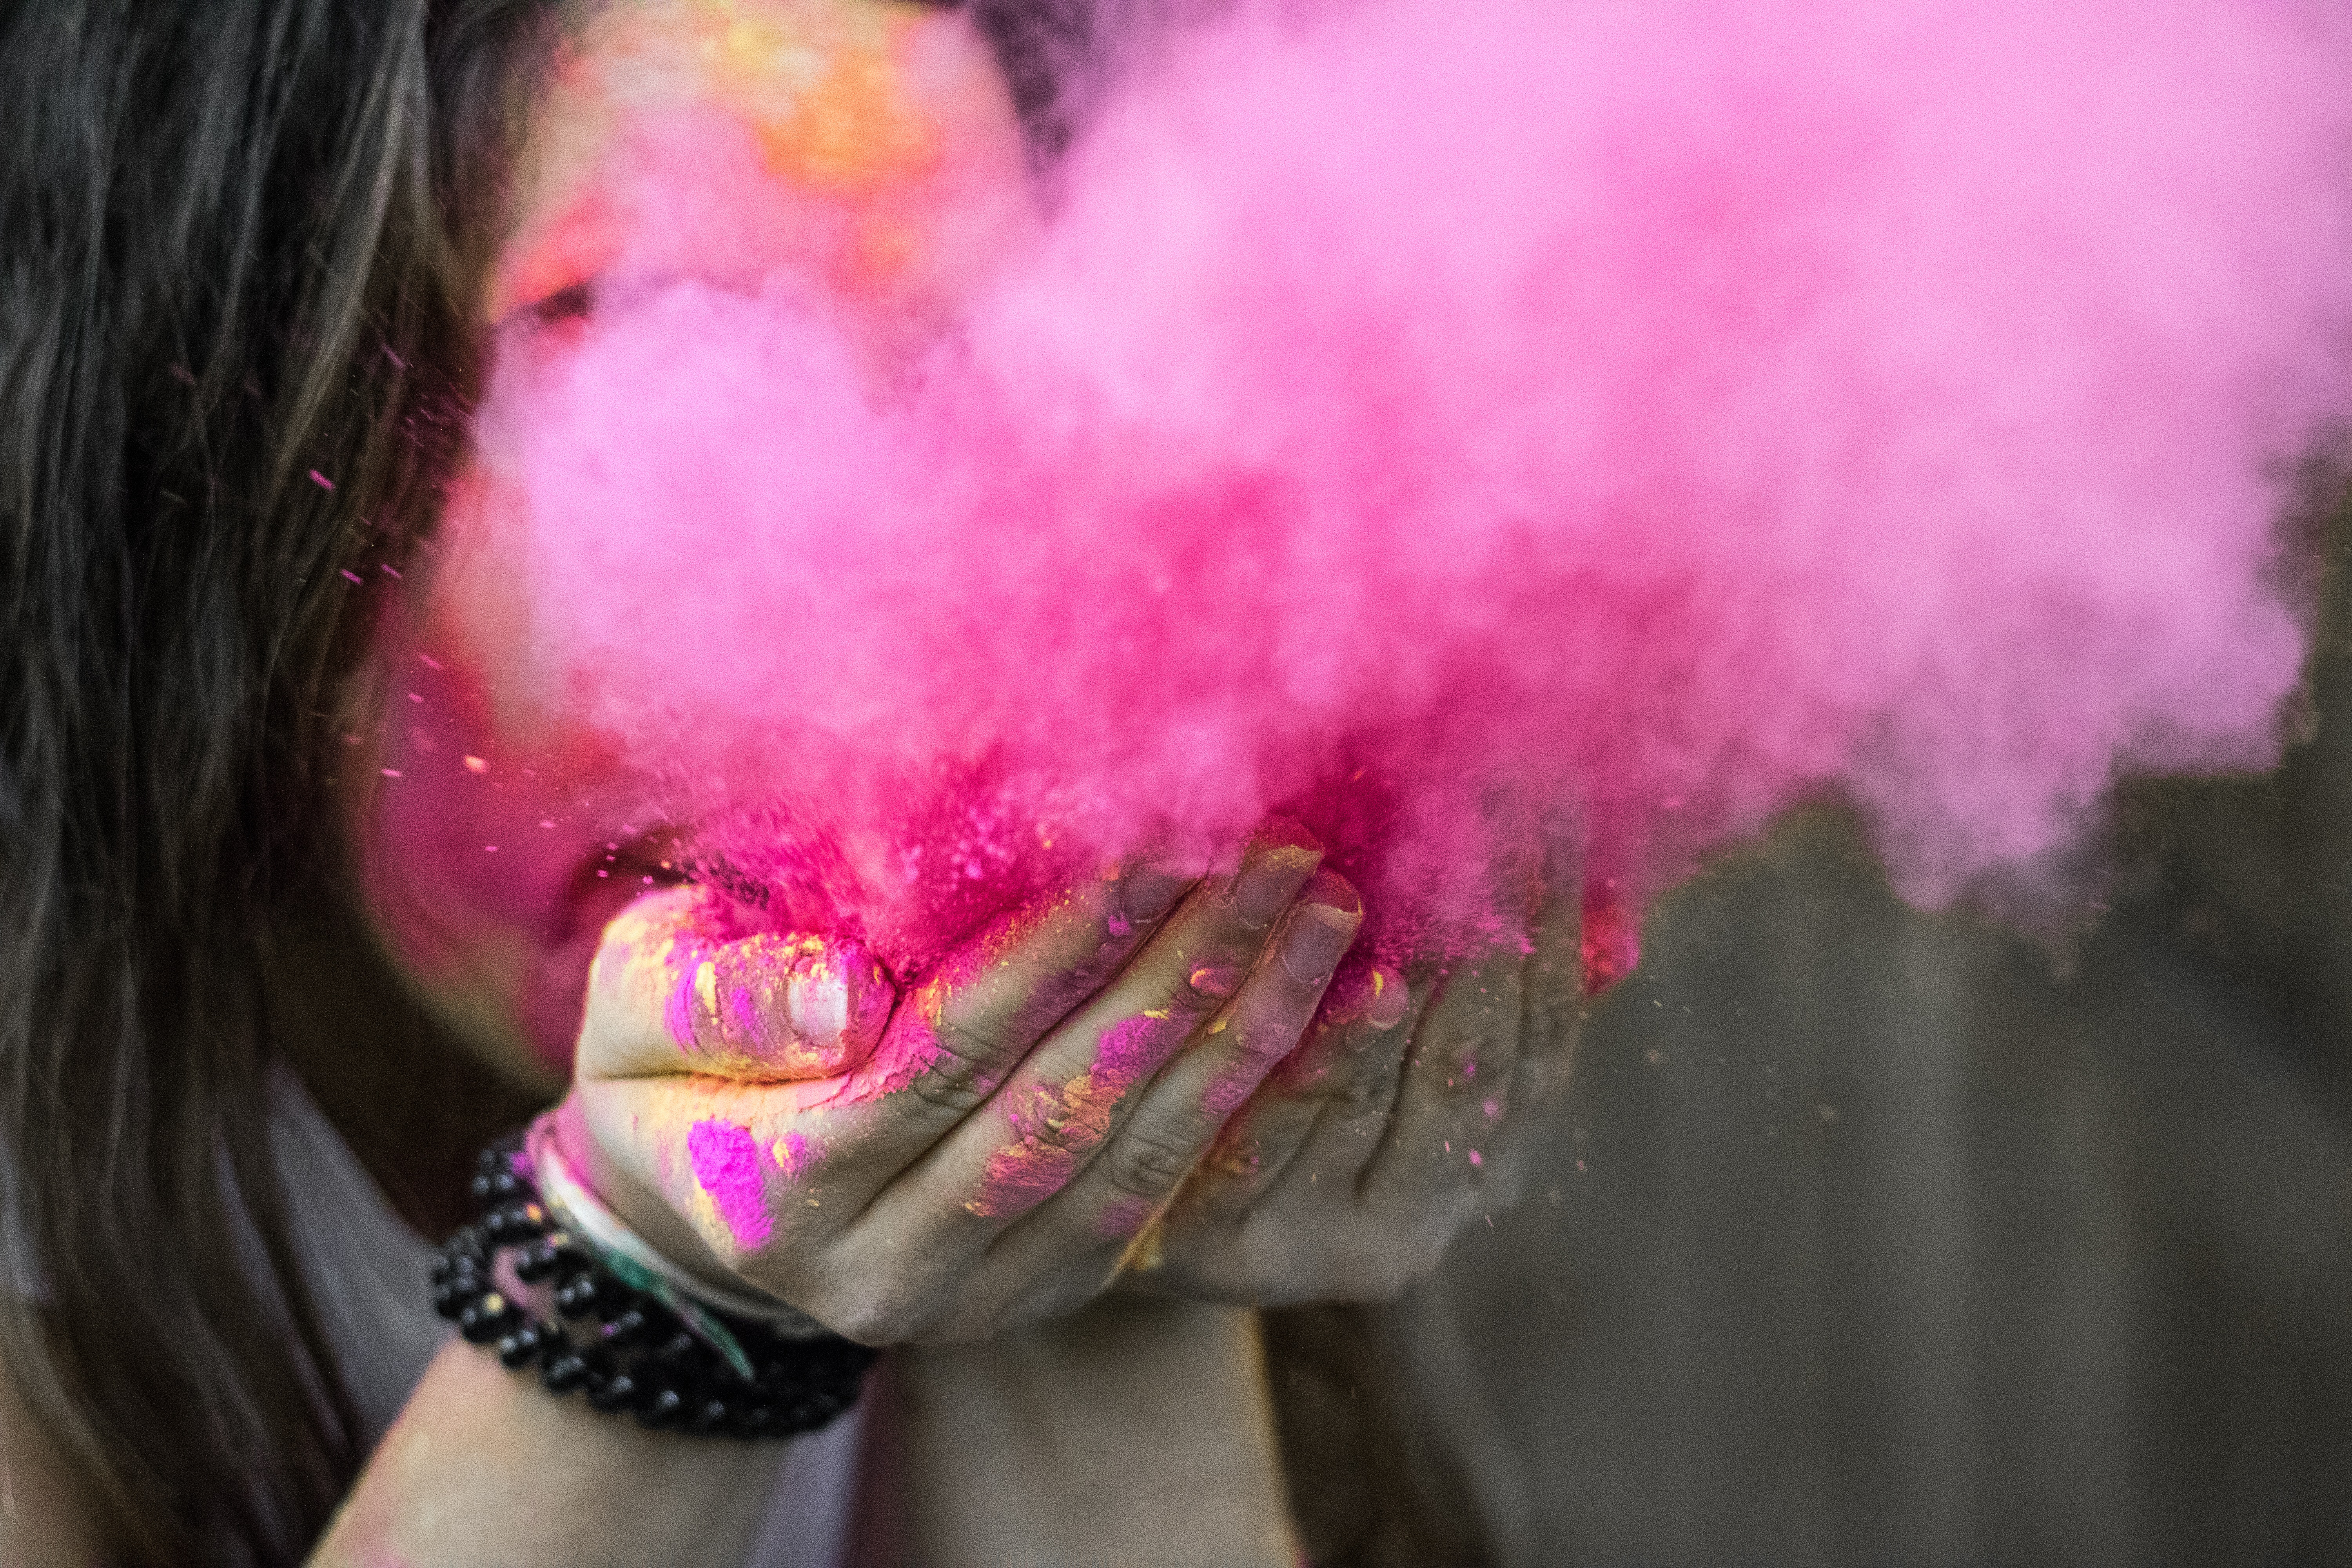 Shallow focus photograph of woman blowing pink powder